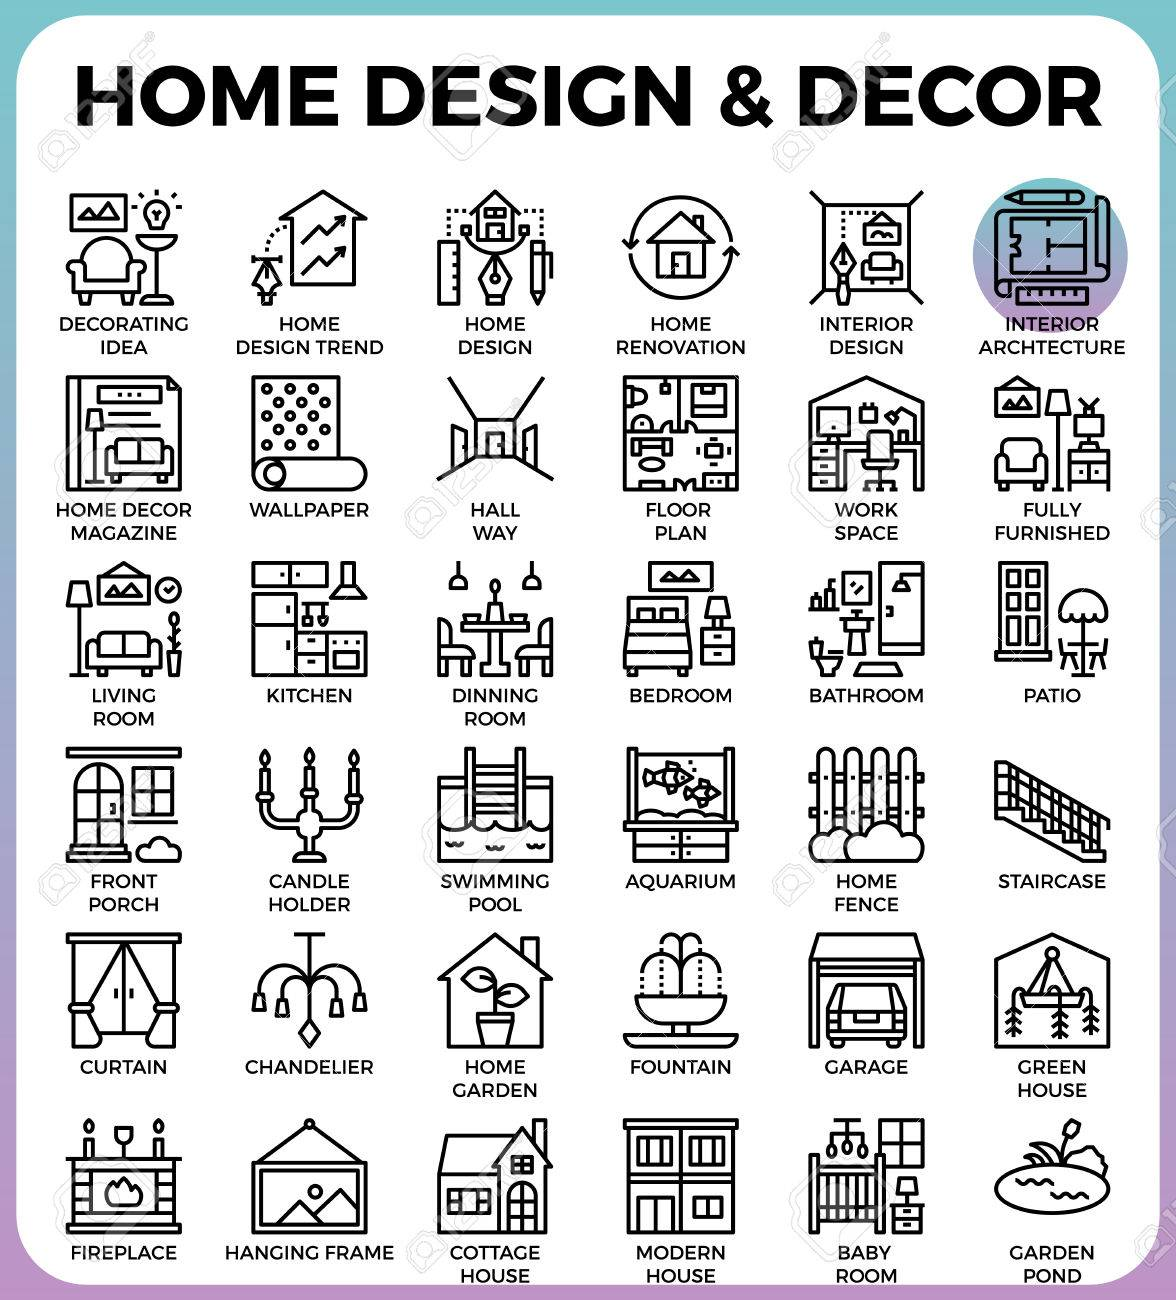 Home Design And Decor Concept Detailed Line Icons Set In Modern Line Icon  Style Concept For